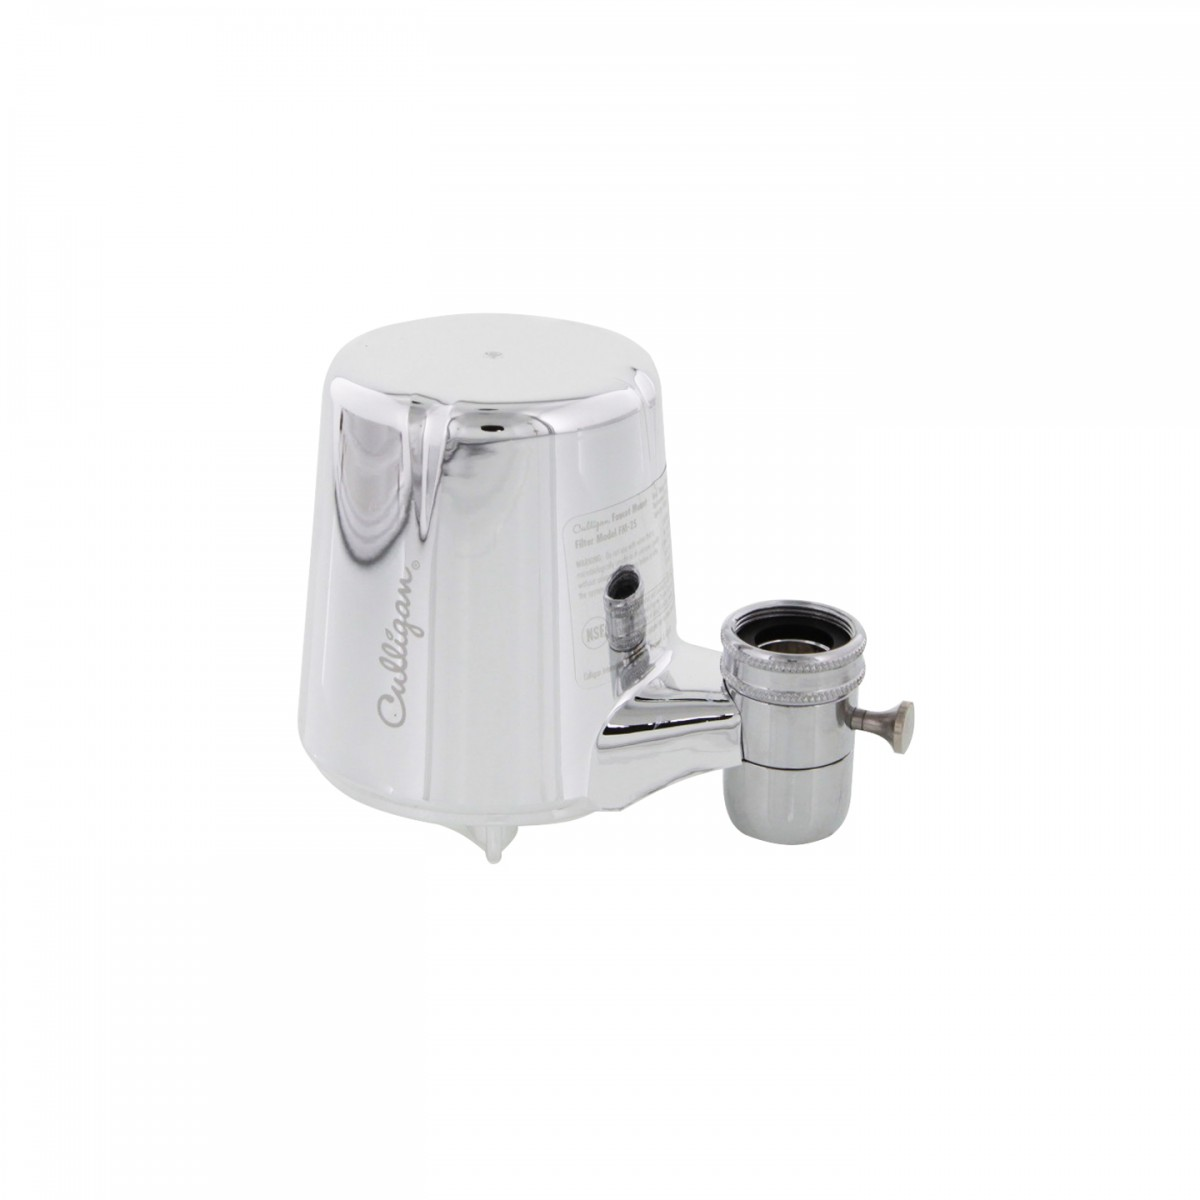 Fm 25 Culligan Water Faucet Filter